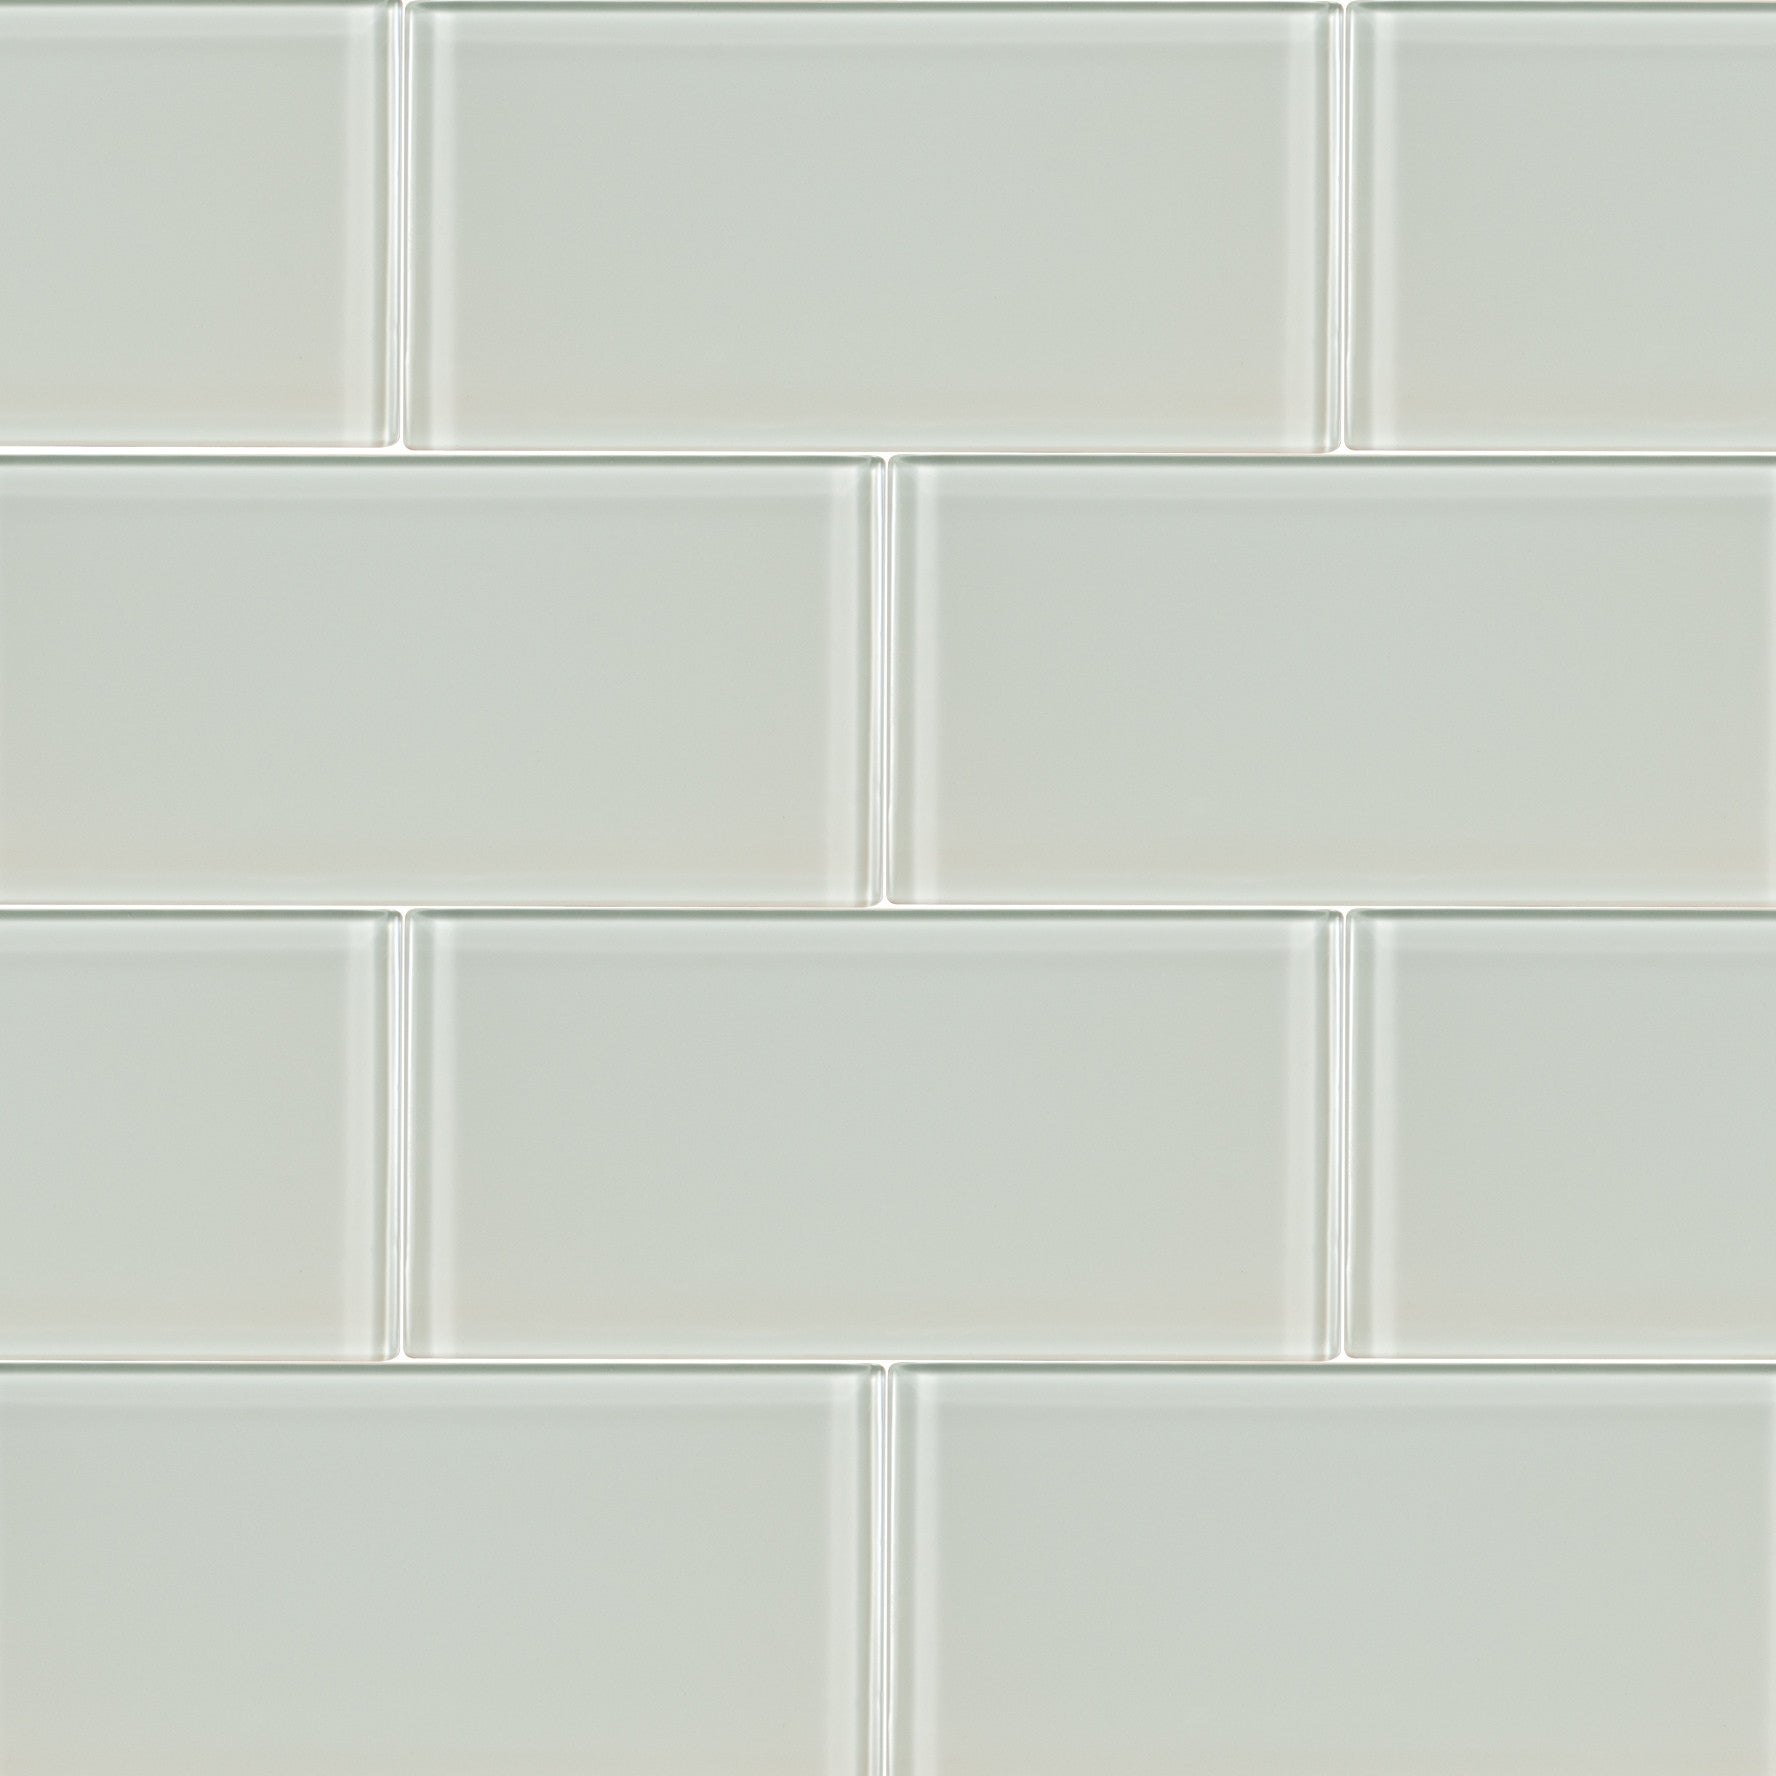 Ms International Inc Gl T Ai36 6 X 3 Rectangle Wall Tile Smooth Visual Sold By Carton 1 Sf Glossy N A